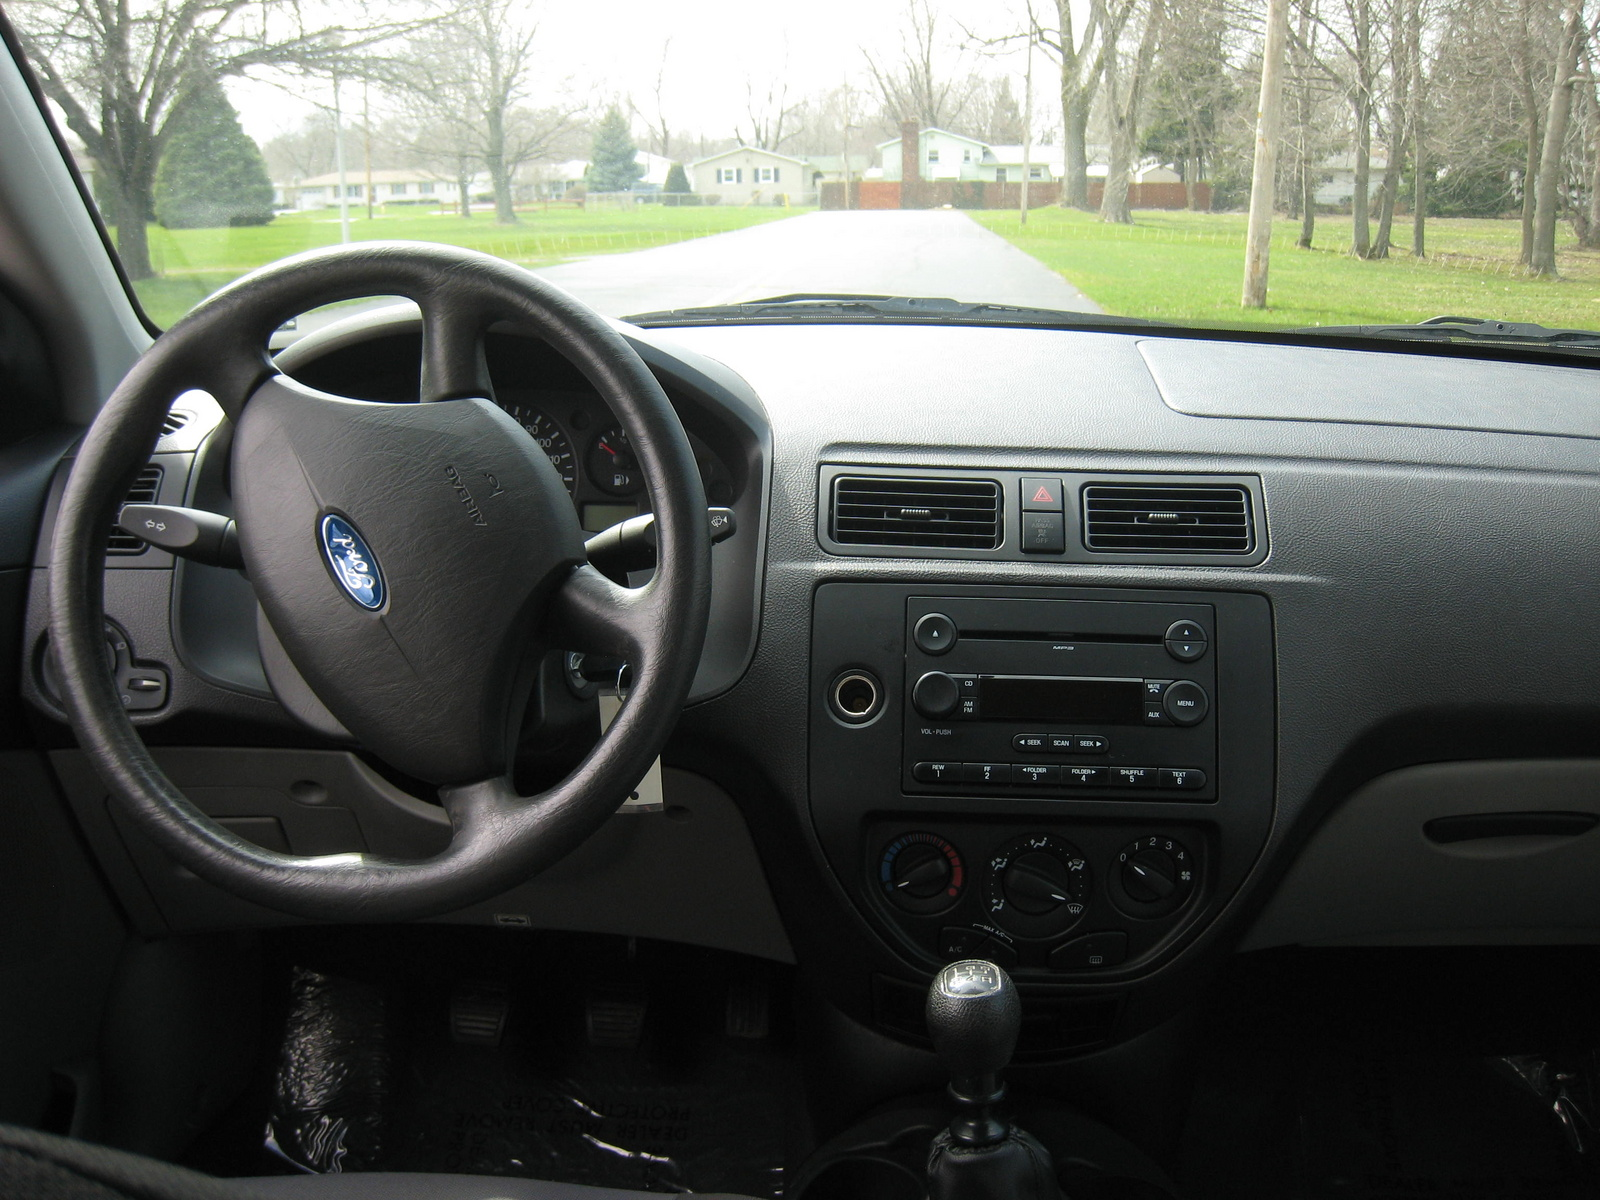 Focus Zx4 Ford Interior